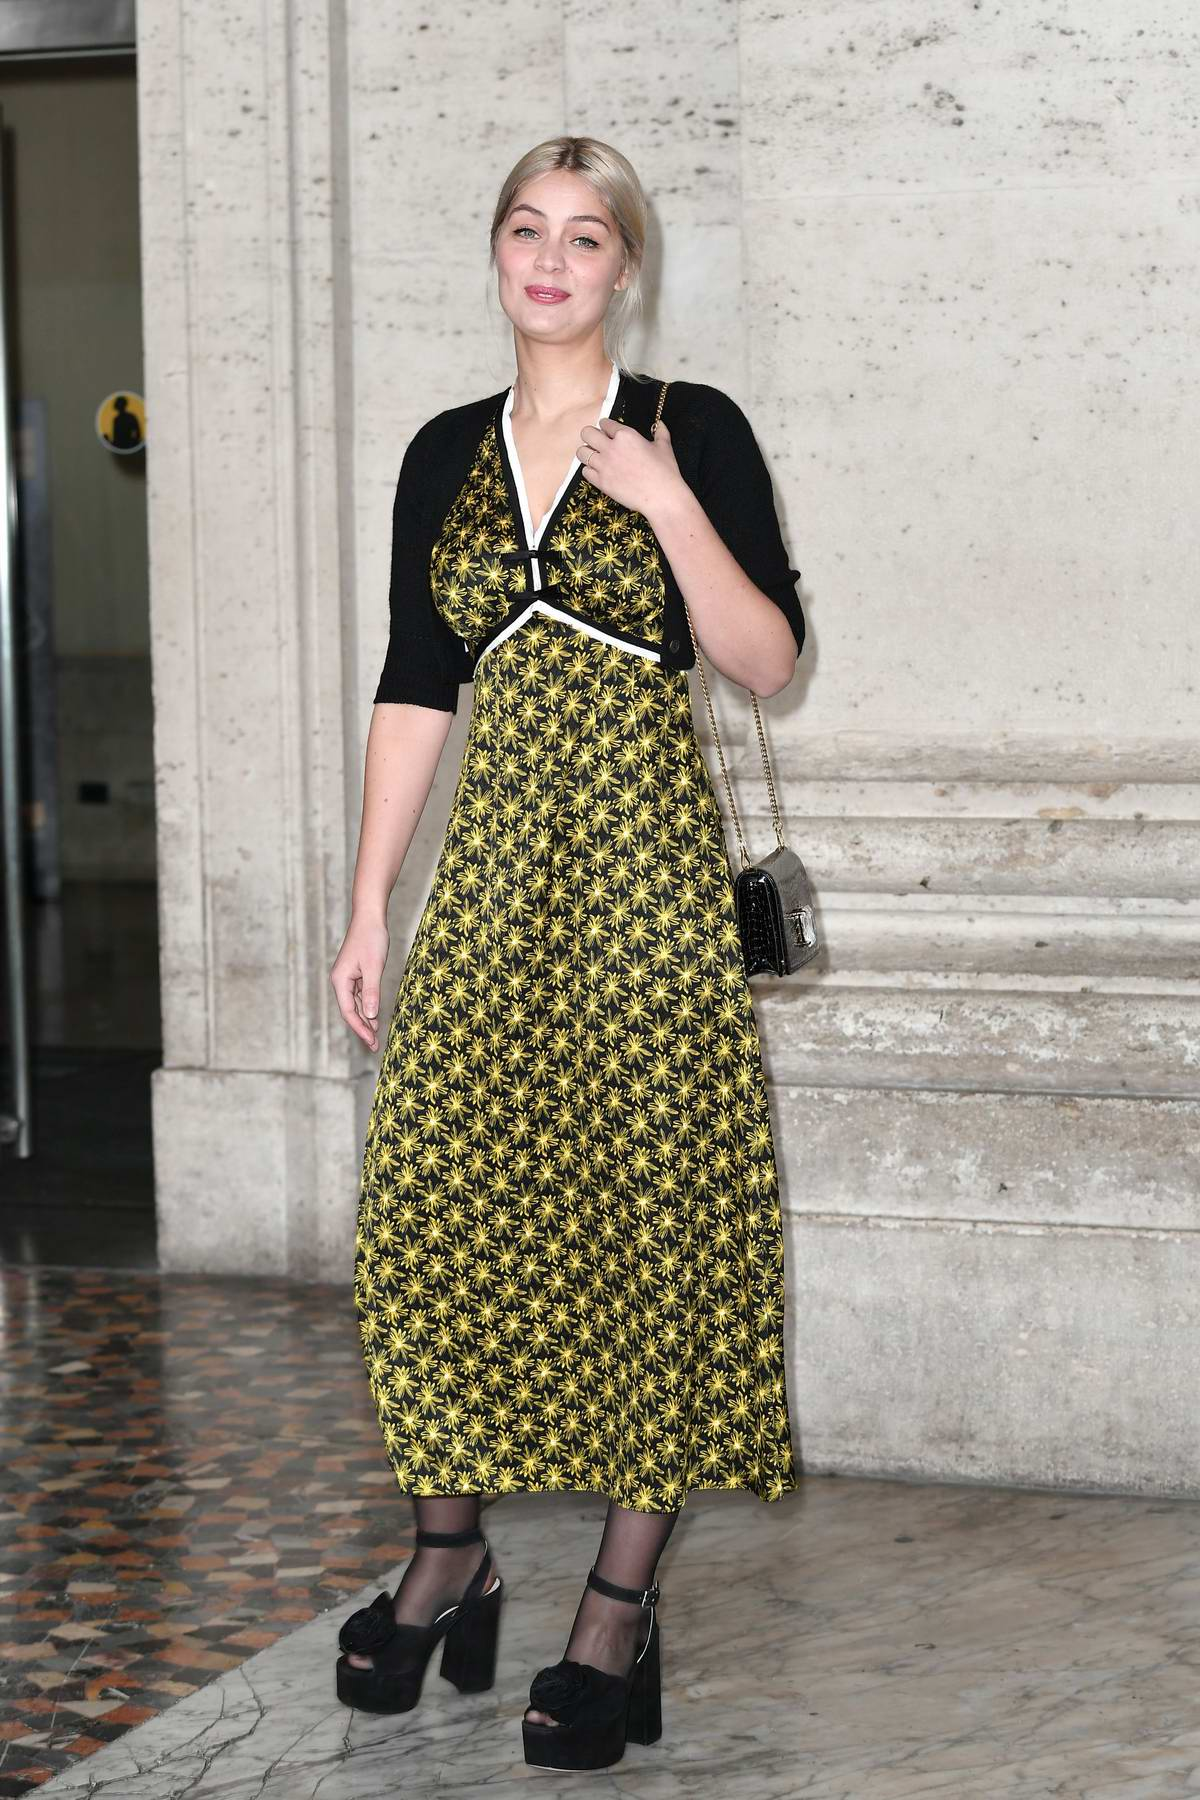 Marie-Ange Casta attends 'The Ruthless' film photocall in Rome, Italy